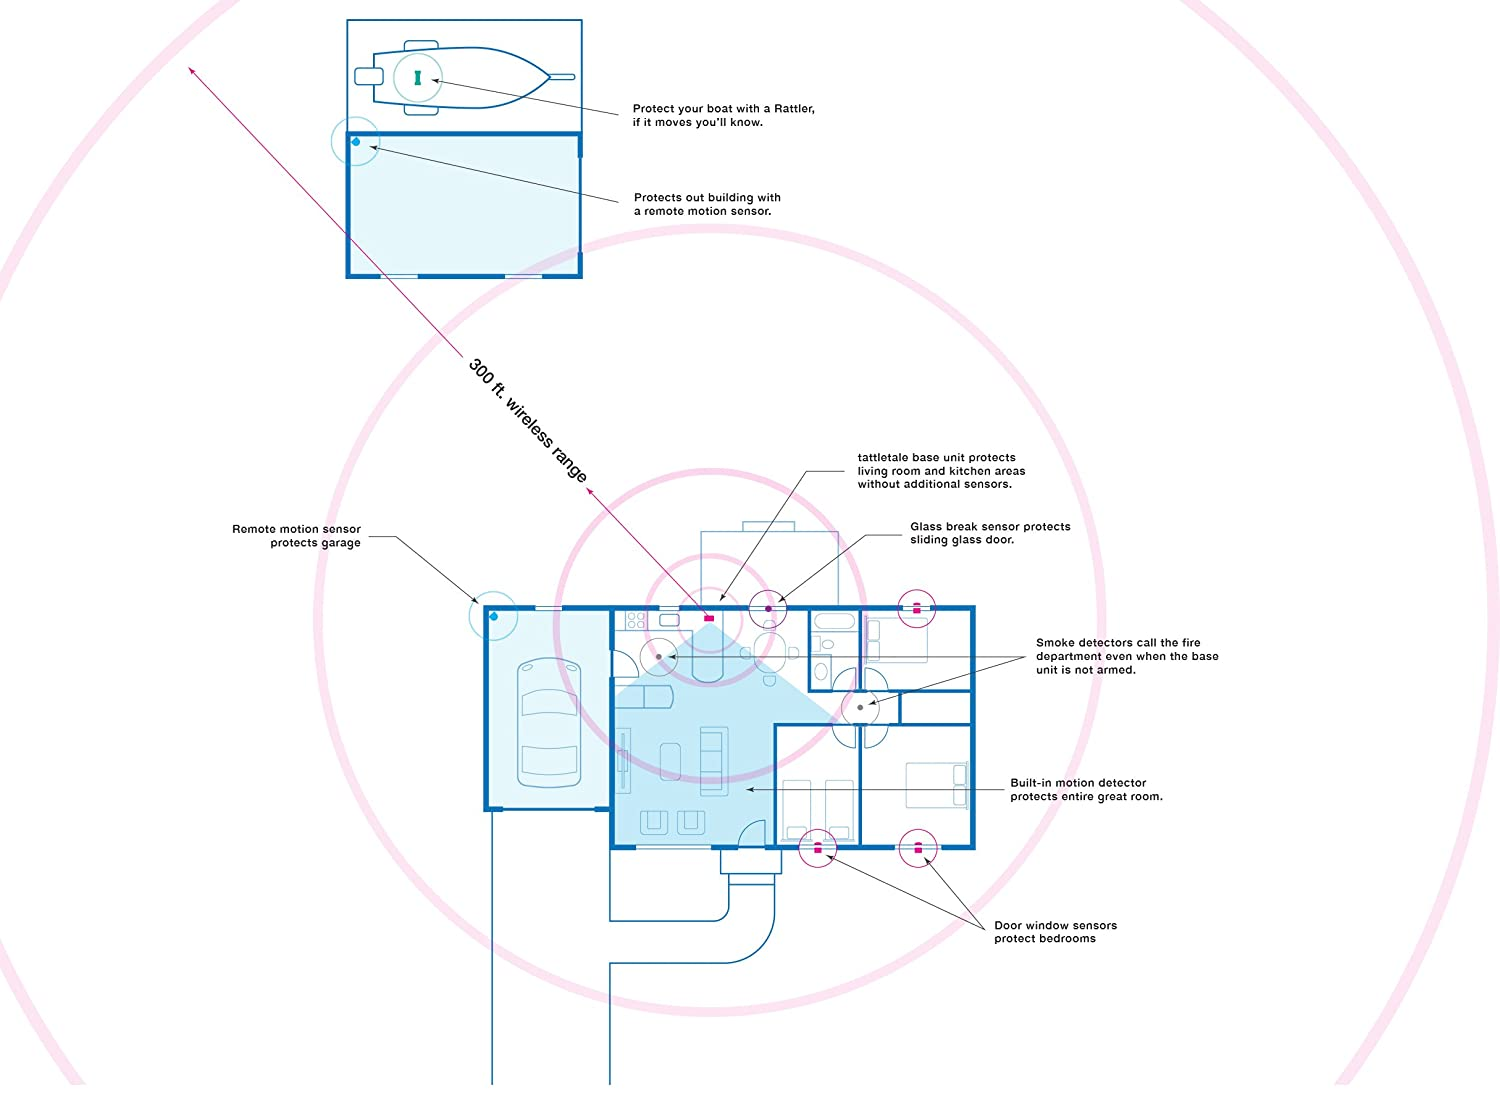 Tattletale Portable Cellular Security System Camera Boat Wiring Diagram Schematic Soke Photo